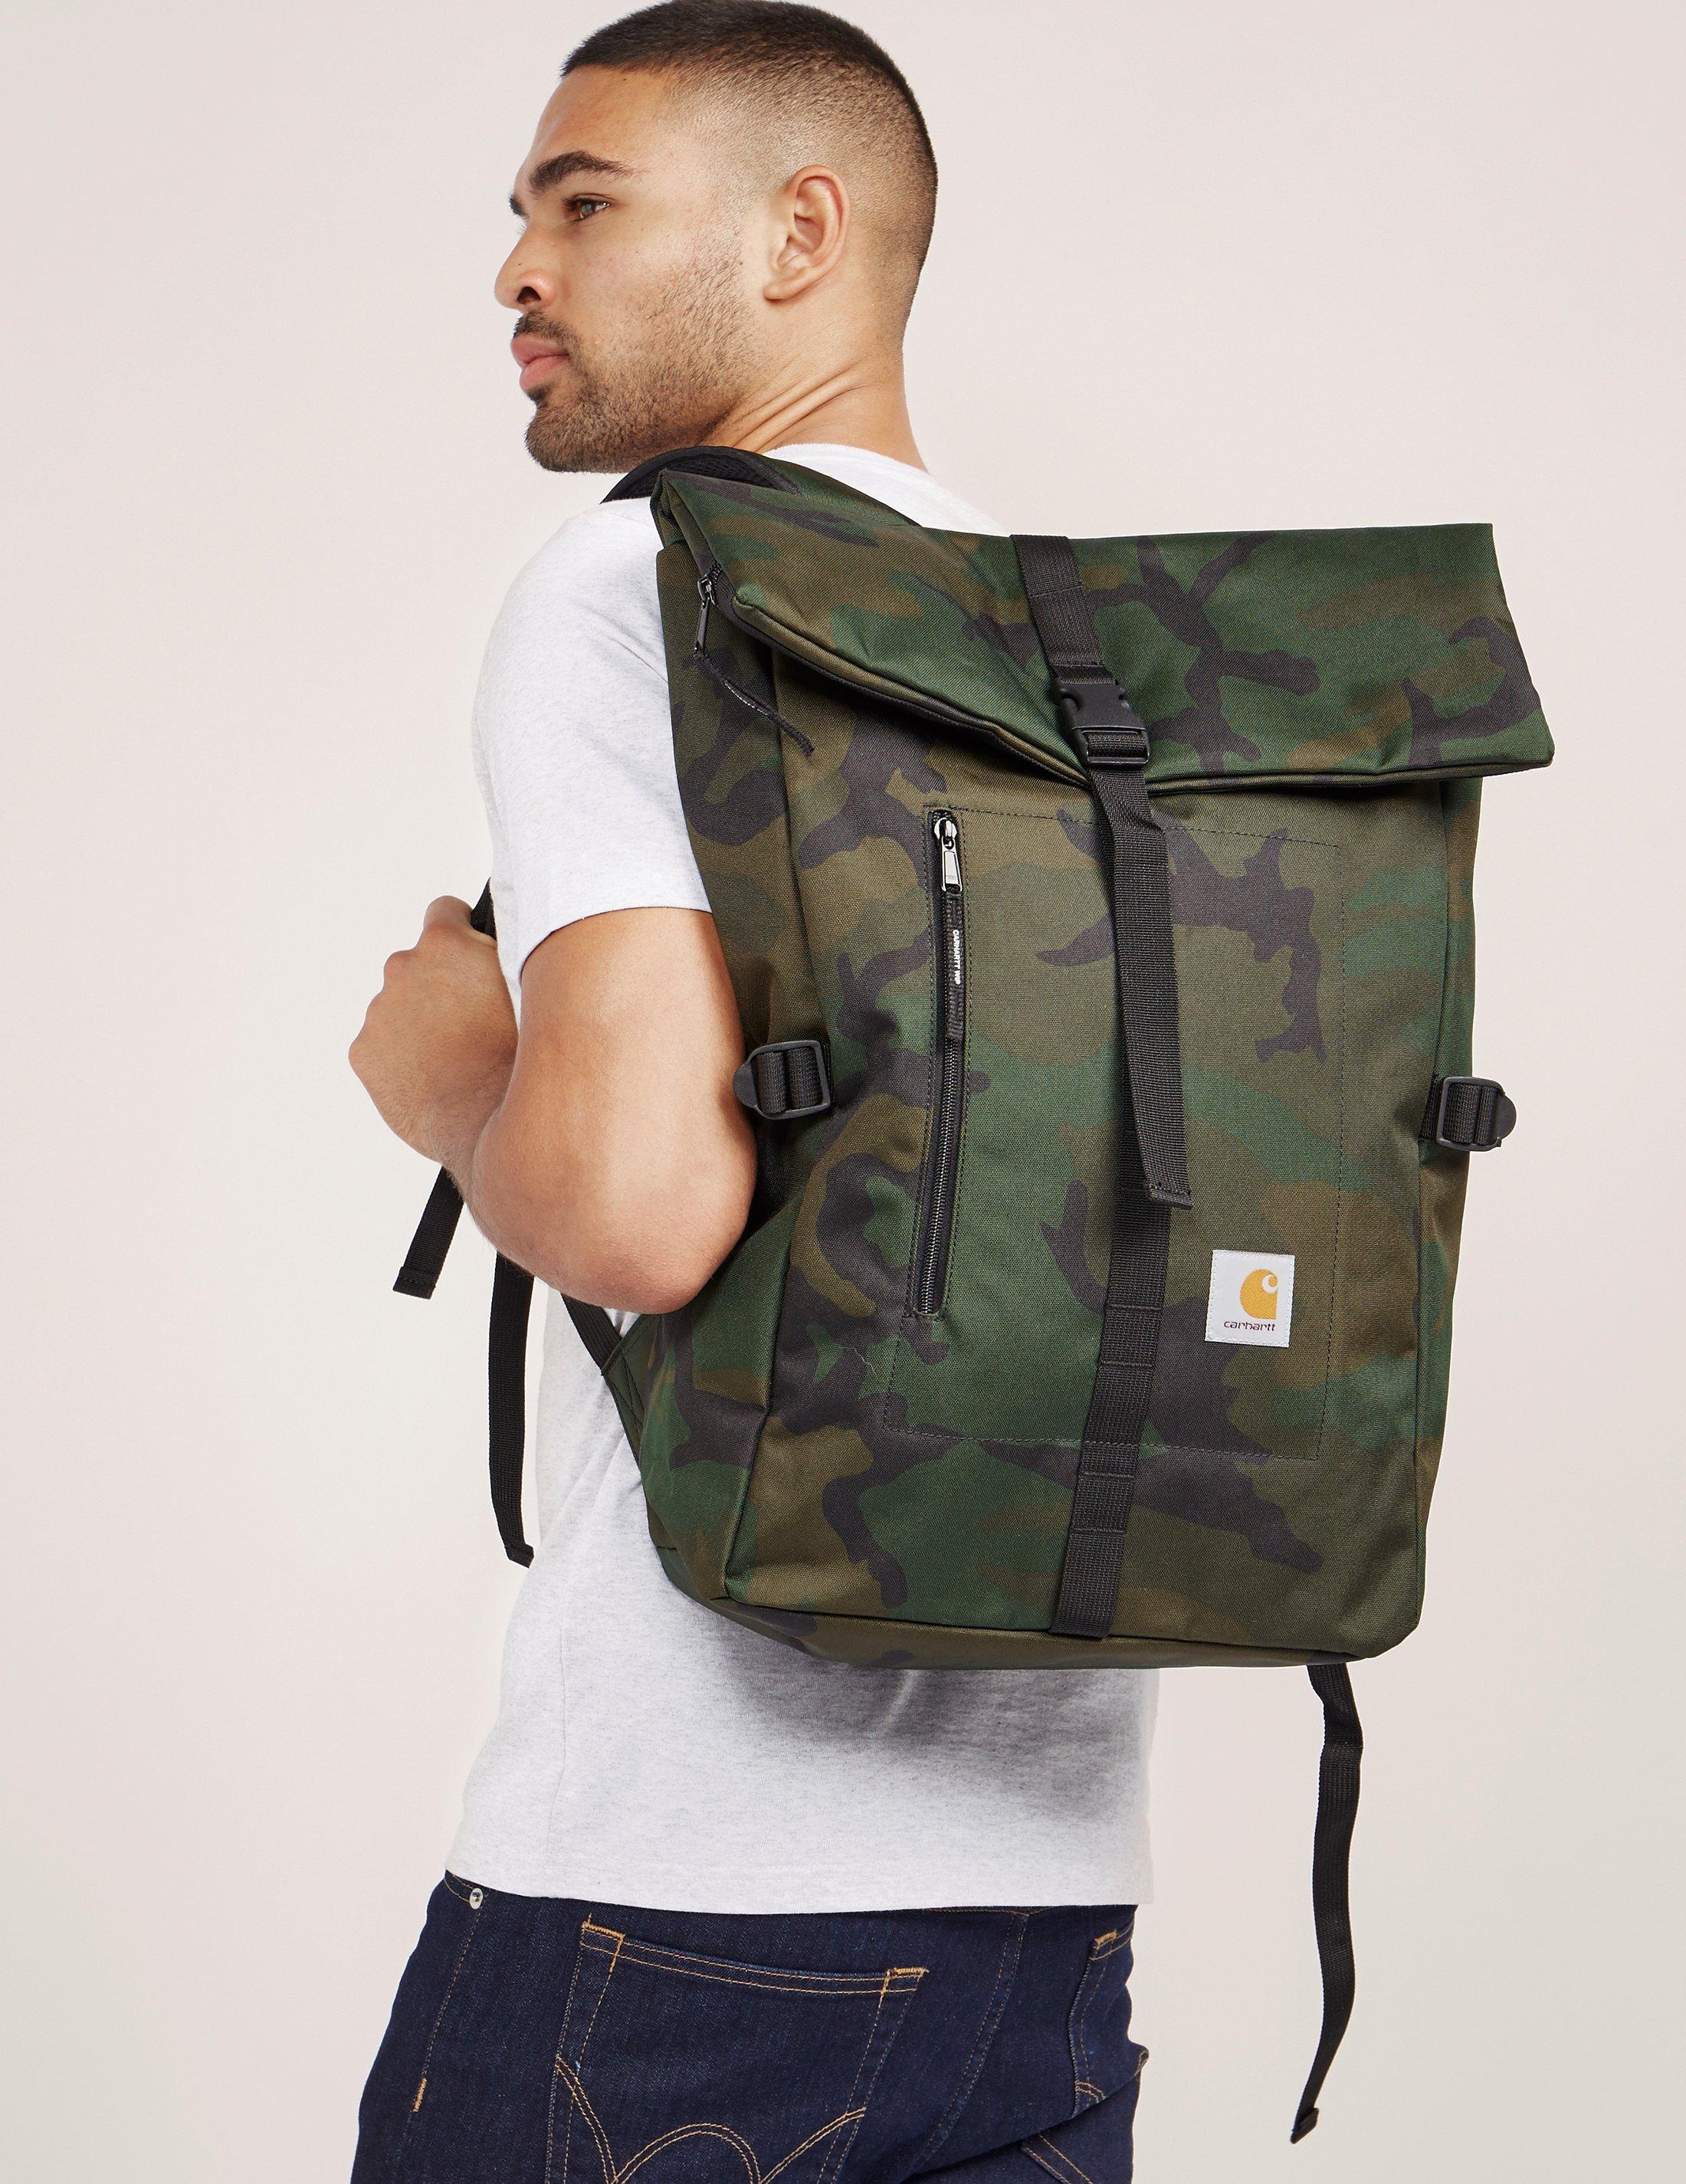 Lyst - Carhartt WIP Phil Backpack in Green for Men